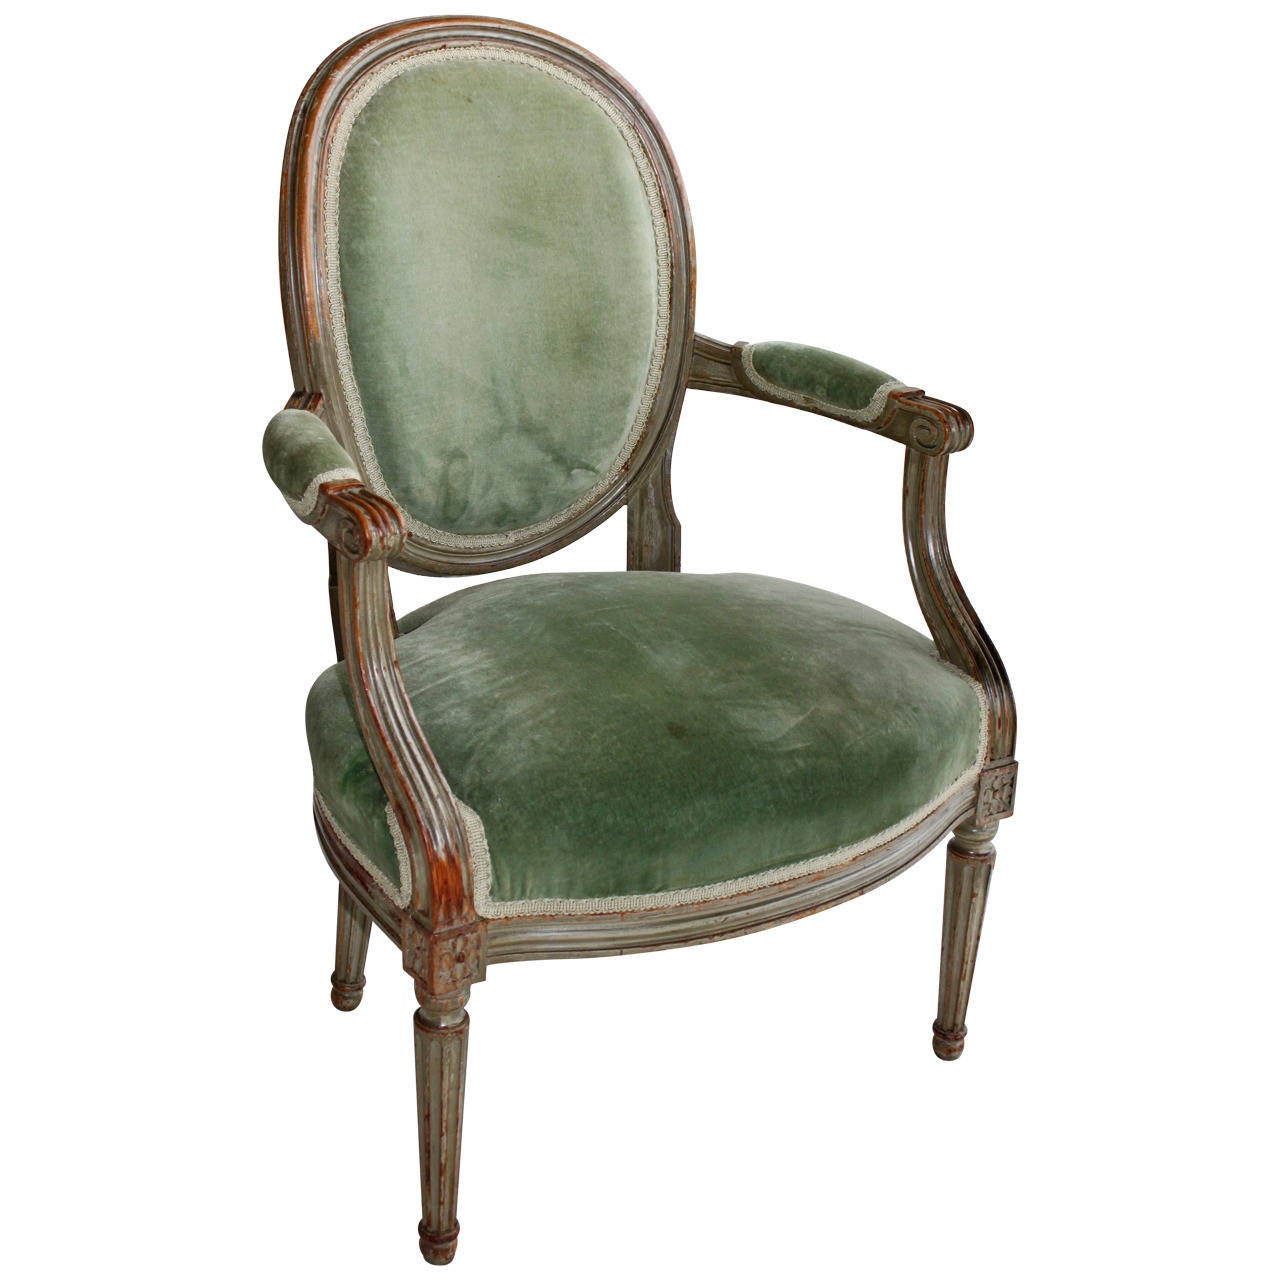 Louis XIV Fauteuil Chair at 1stdibs